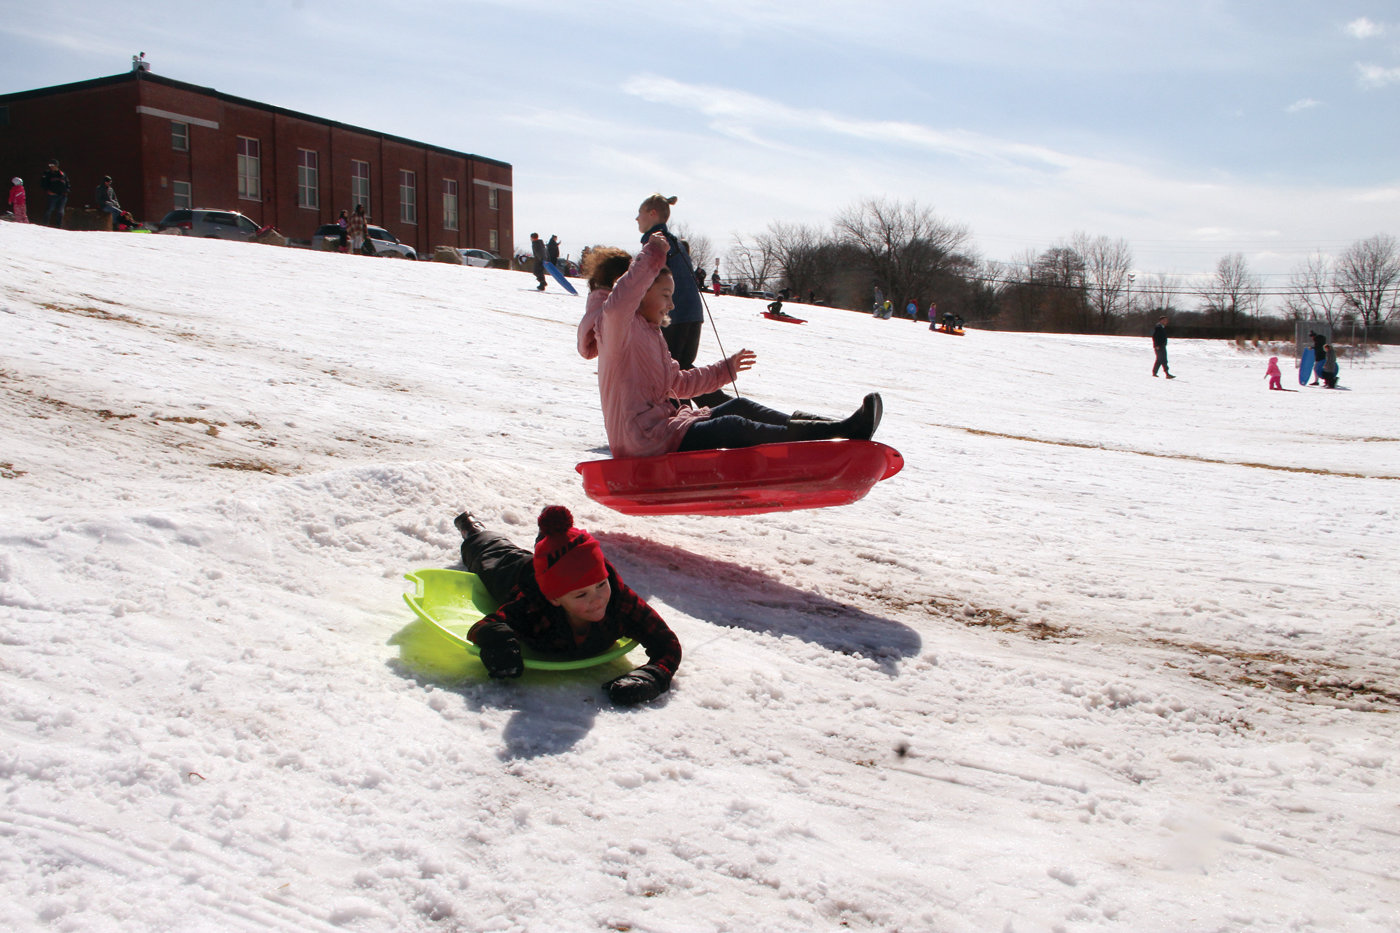 Savannah Pacheco took to the air and came down without losing her sled.